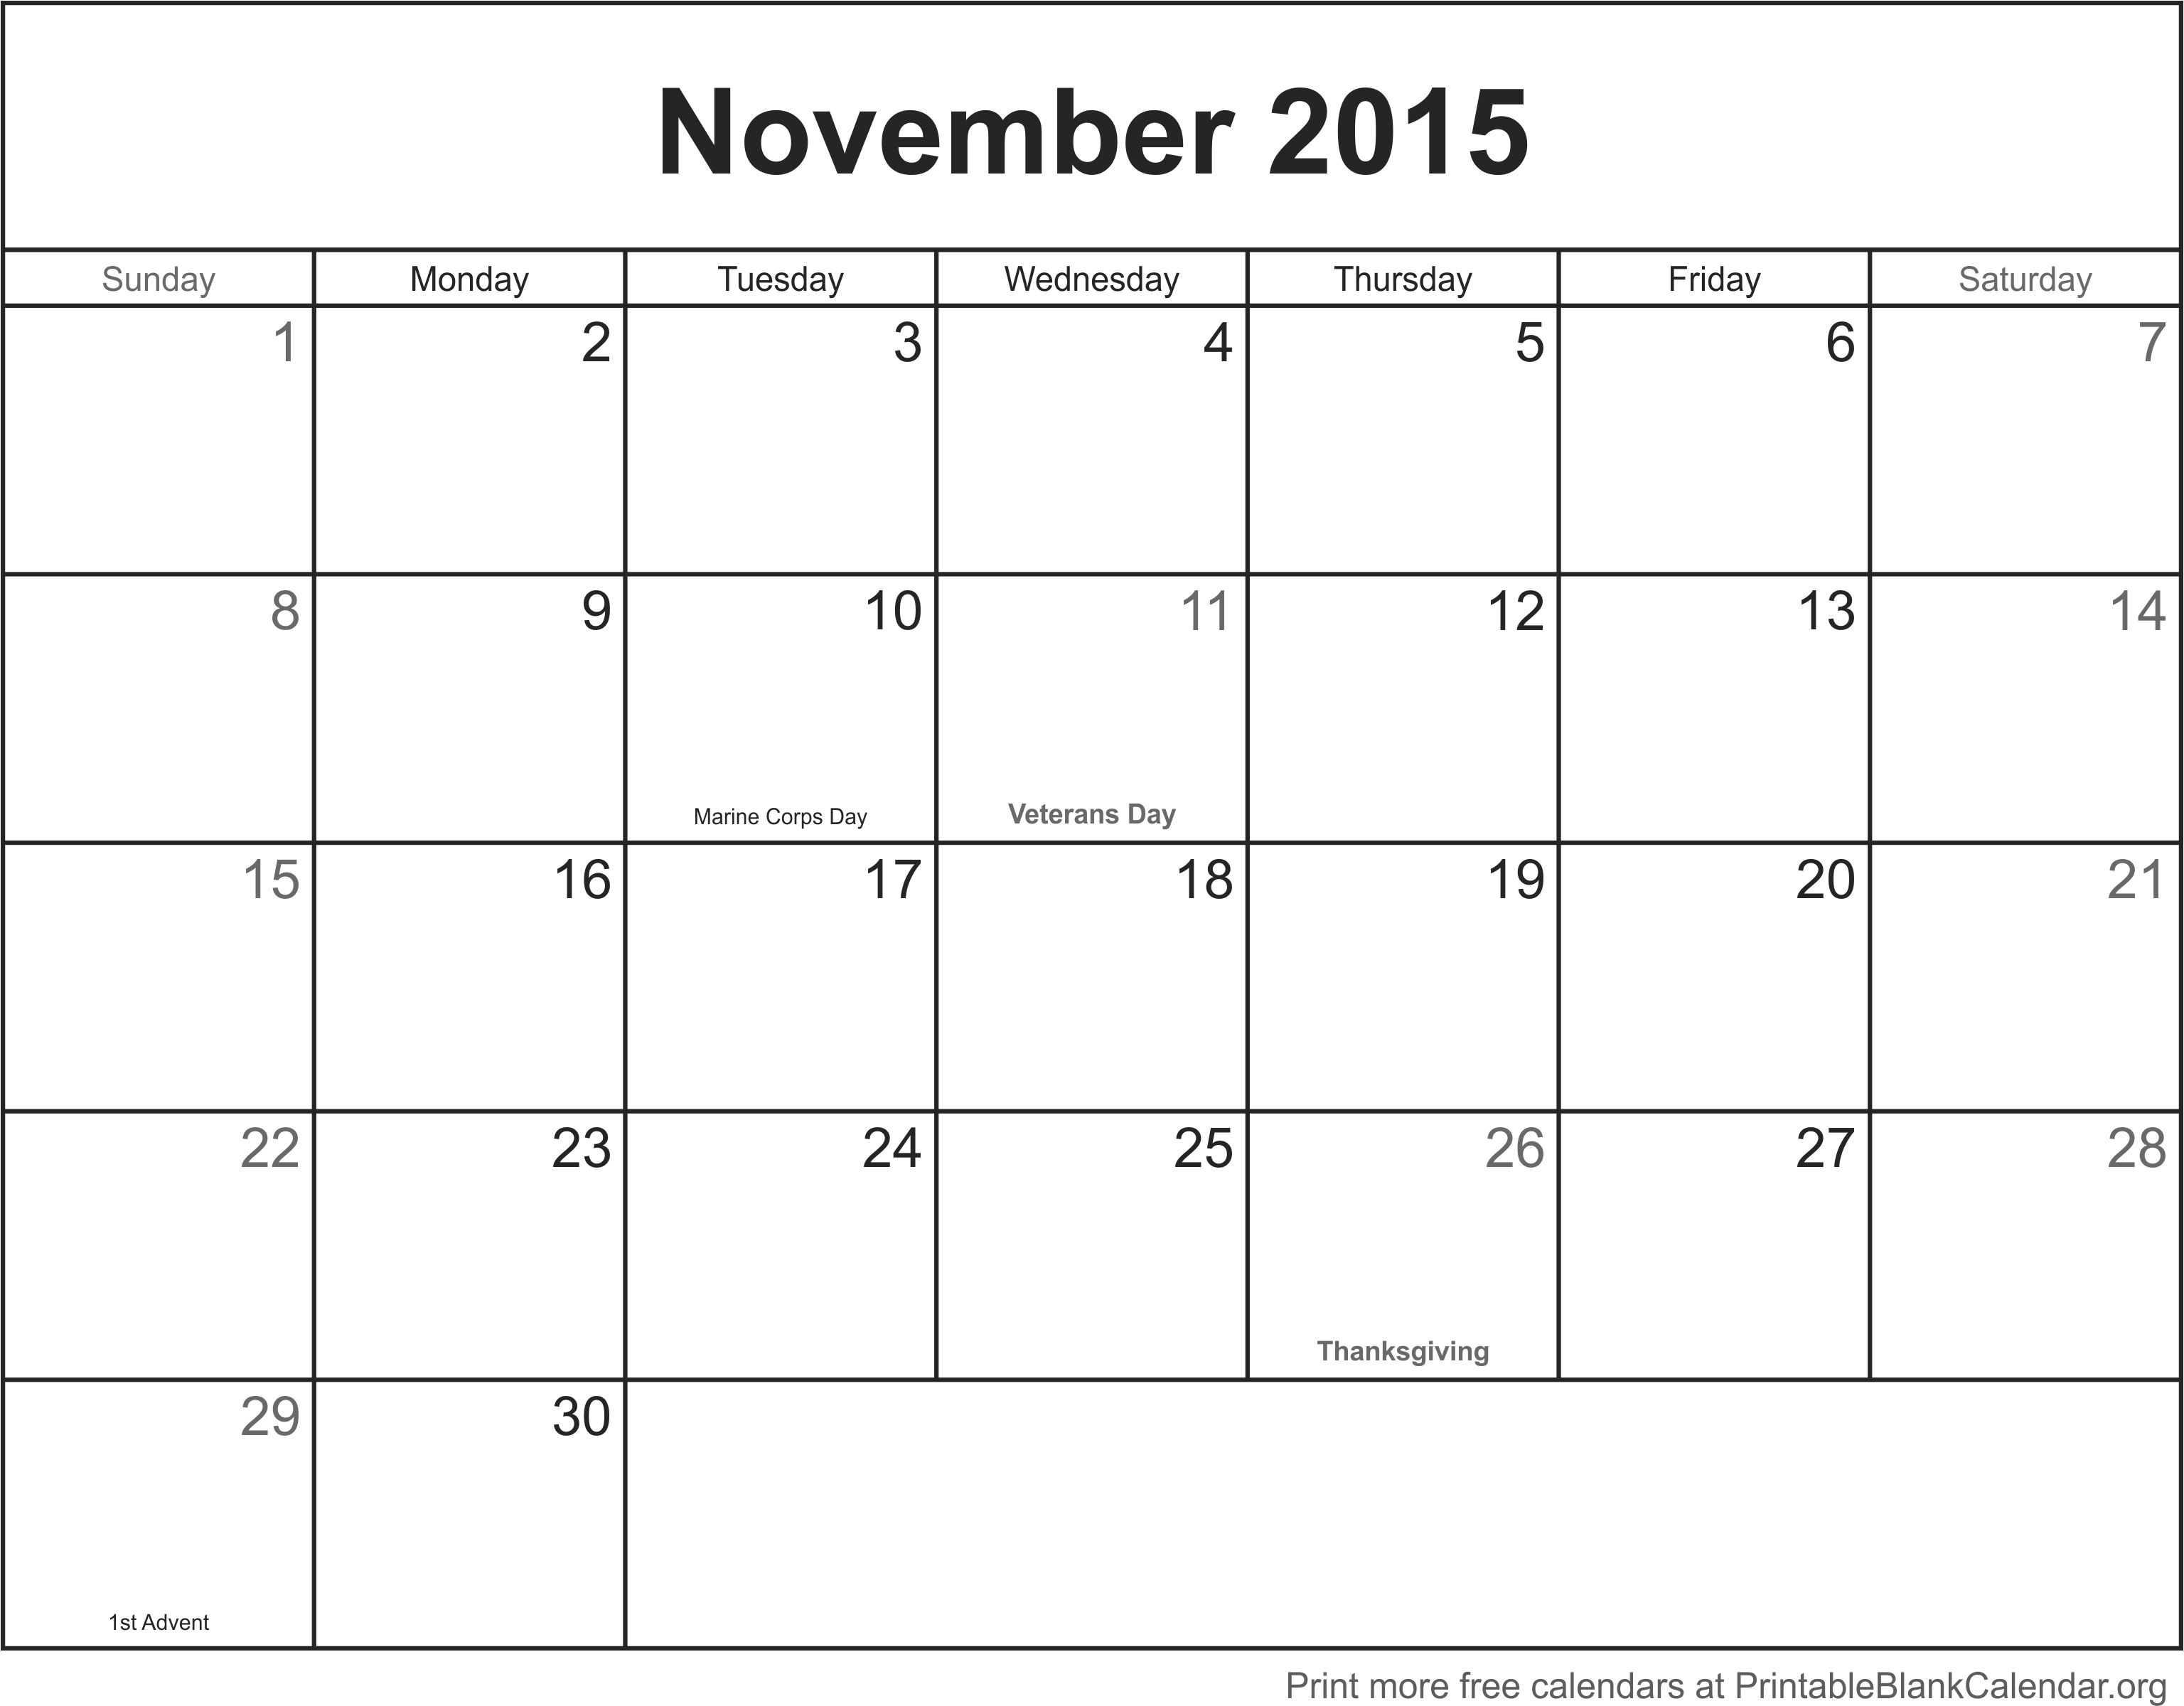 November 2015 Printable Calendar Mesmerizing Blank | mightymic.org